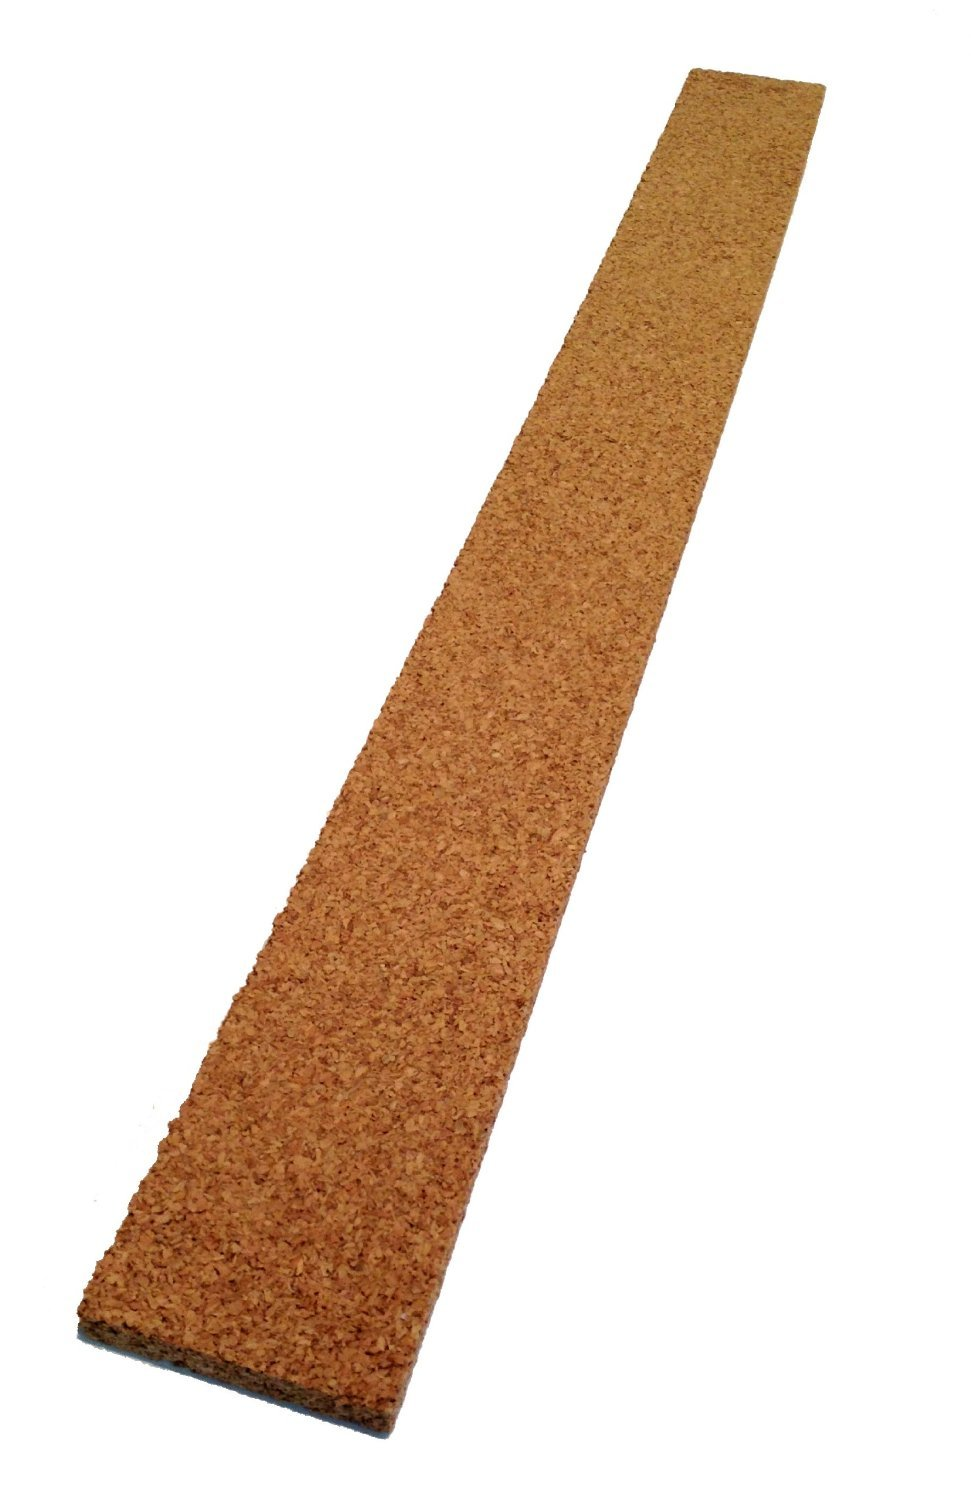 Thick Multi Purpose Cork Strips (Set of 8) Classroom Bulletin Board Bar 36 x 2.125 x 0.5 inches Jelinek Cork Group strip-qc2.625x36x1/2